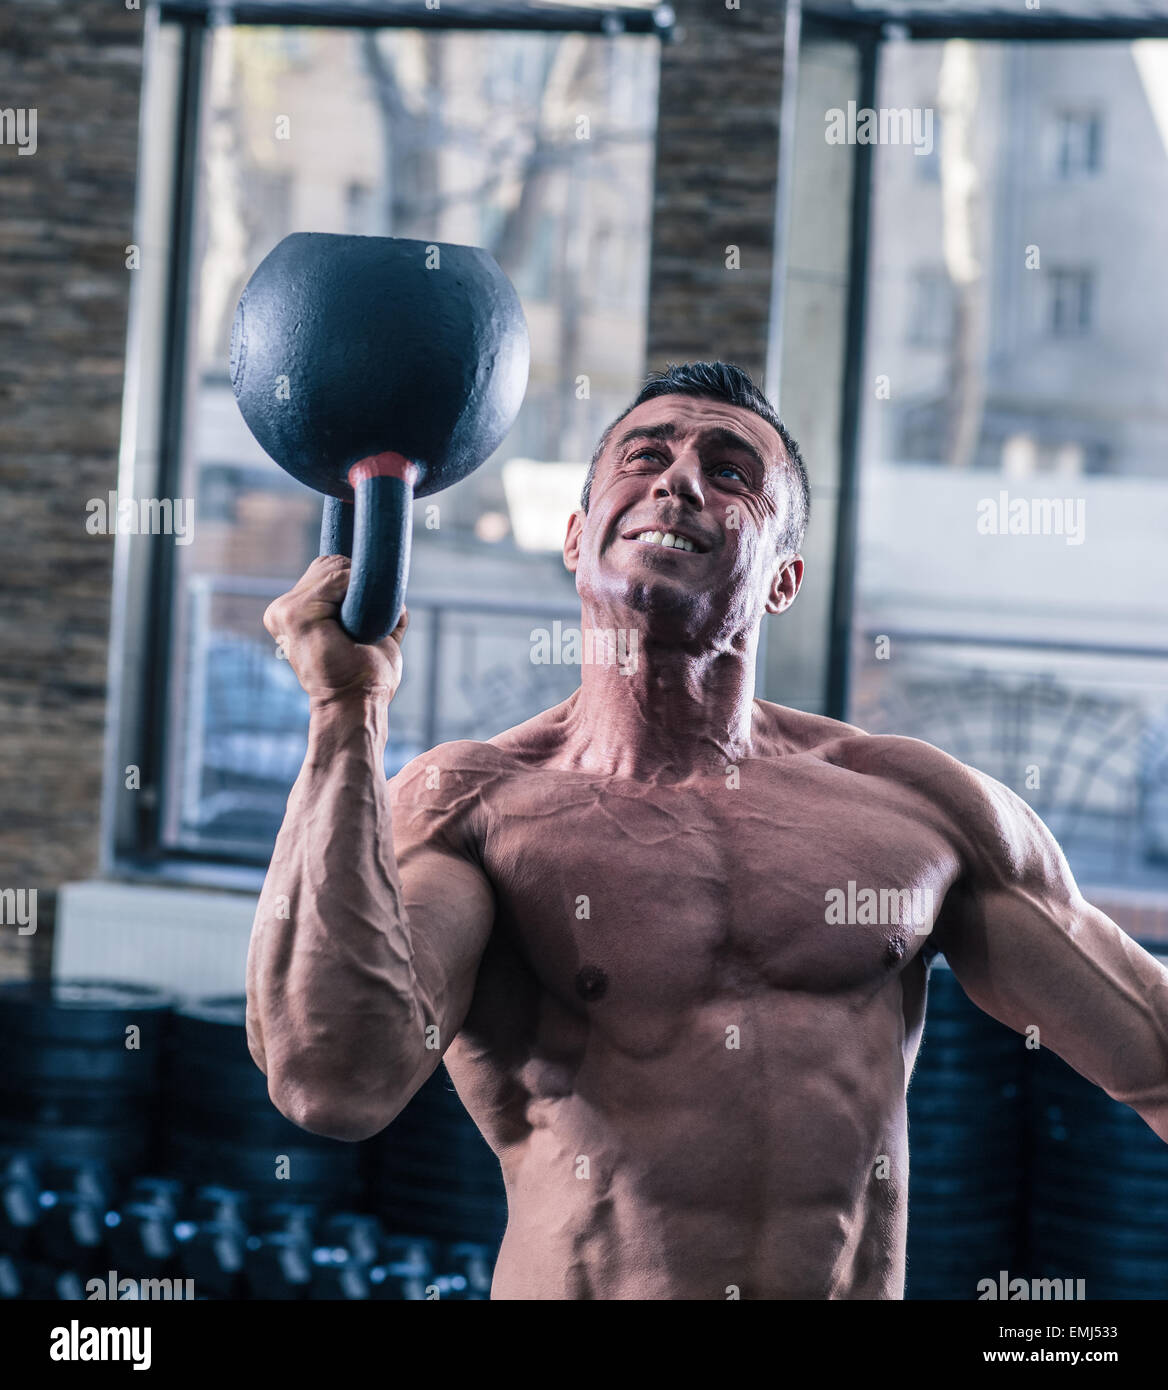 Bodybuilder man workout with kettle ball at gym - Stock Image